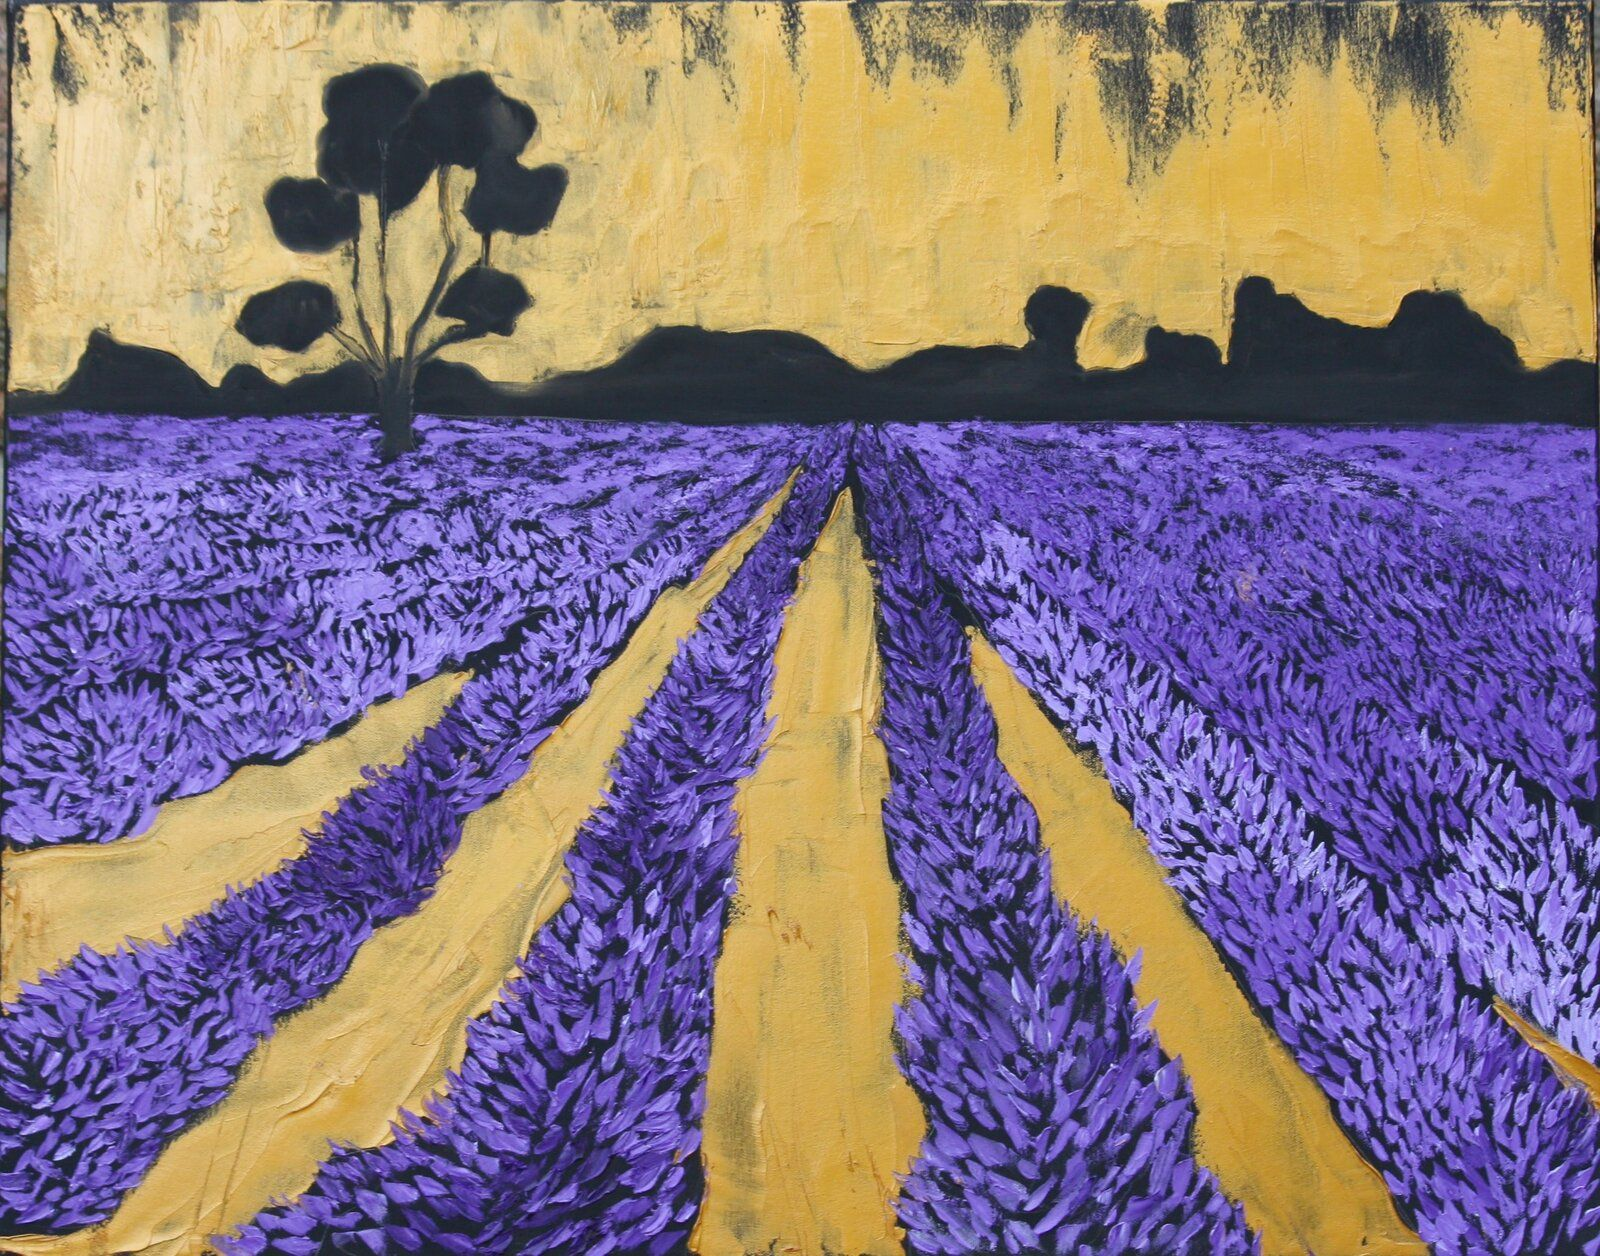 Lavender Fields Forever 92 Cm X 73 Cm Oil On Canvas 2019